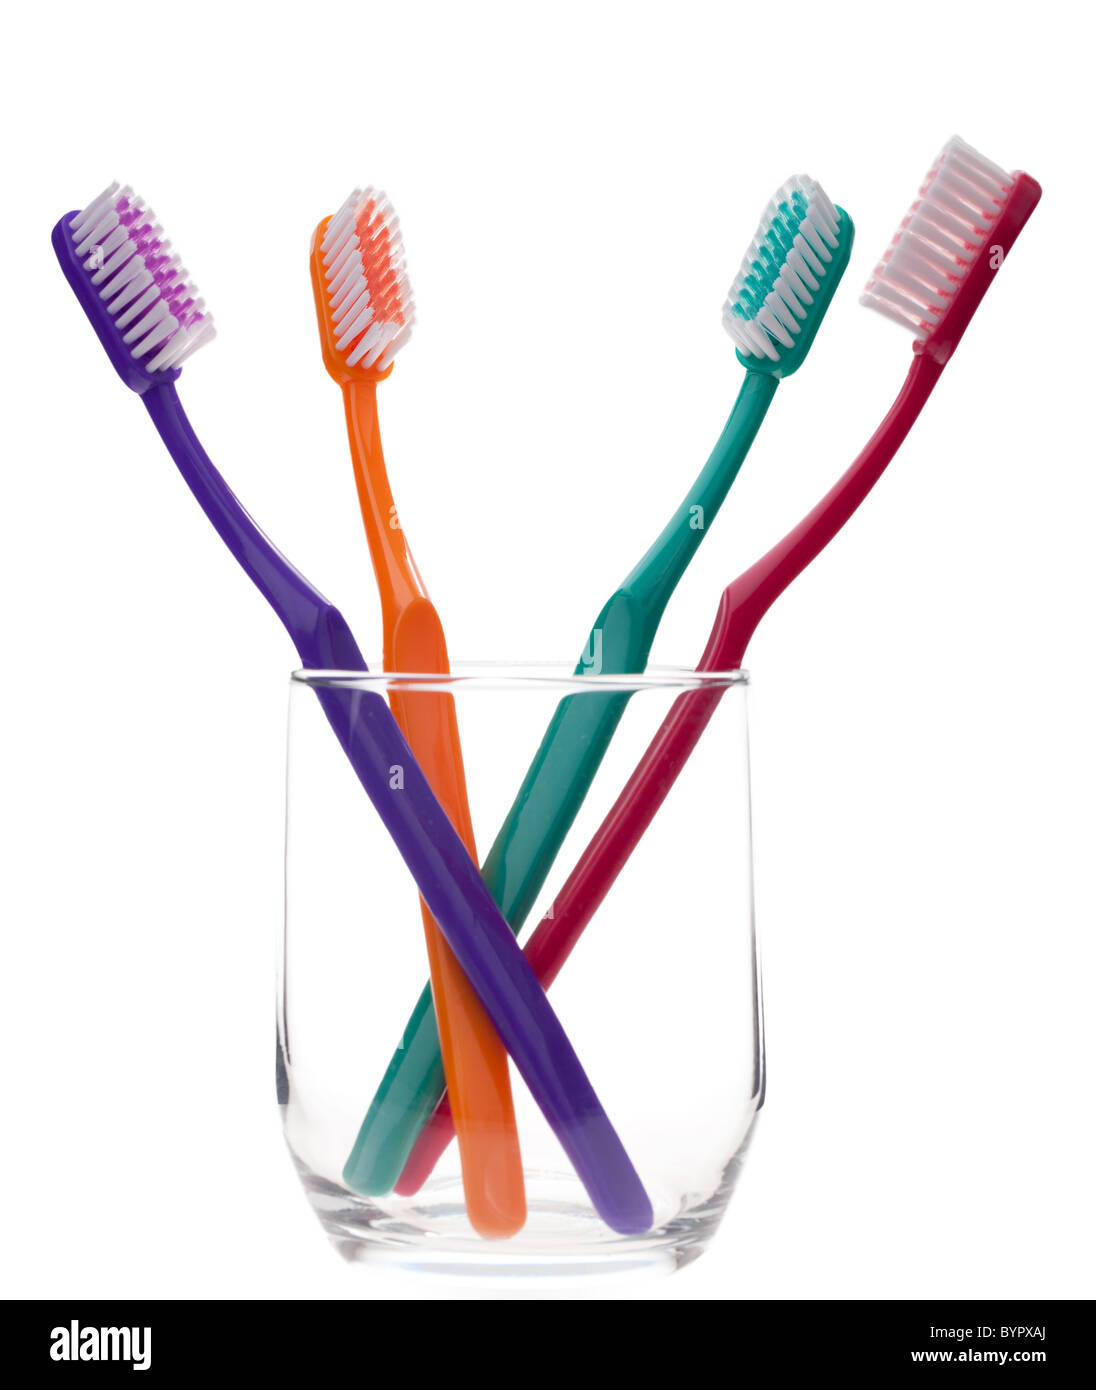 four colorful toothbrushes in a glass, isolated against a white background - Stock Image